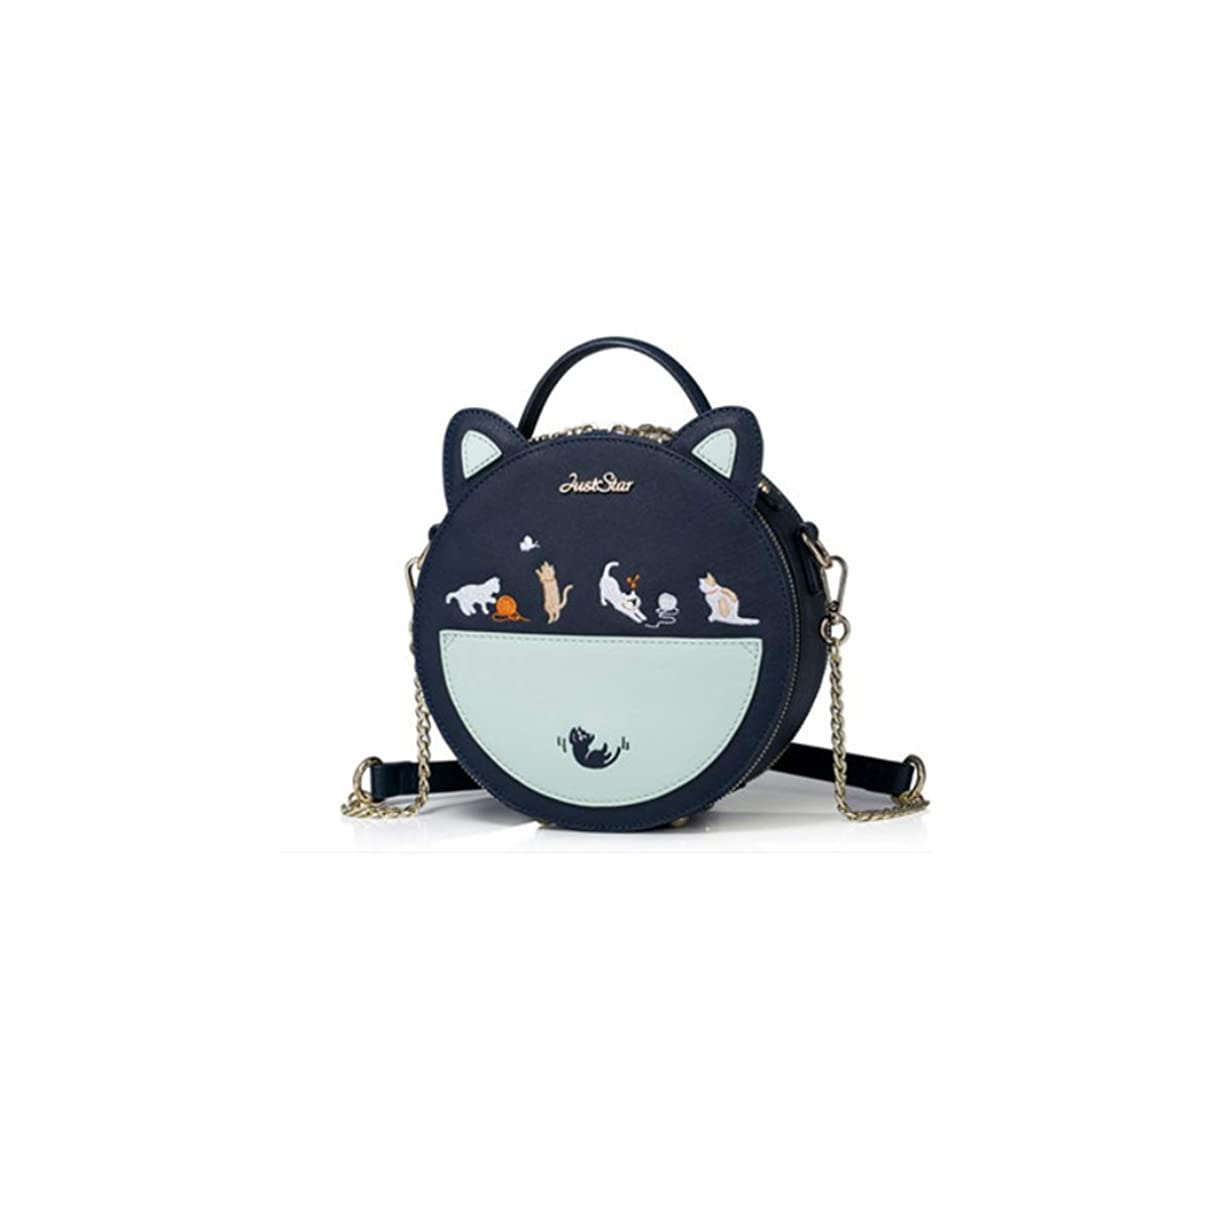 Xingganglenyin Women's Shoulder Bag,Cute Animal, cat Ears Small Round Bag, Small White sail Pendant Small Round Bag, Pink, Black